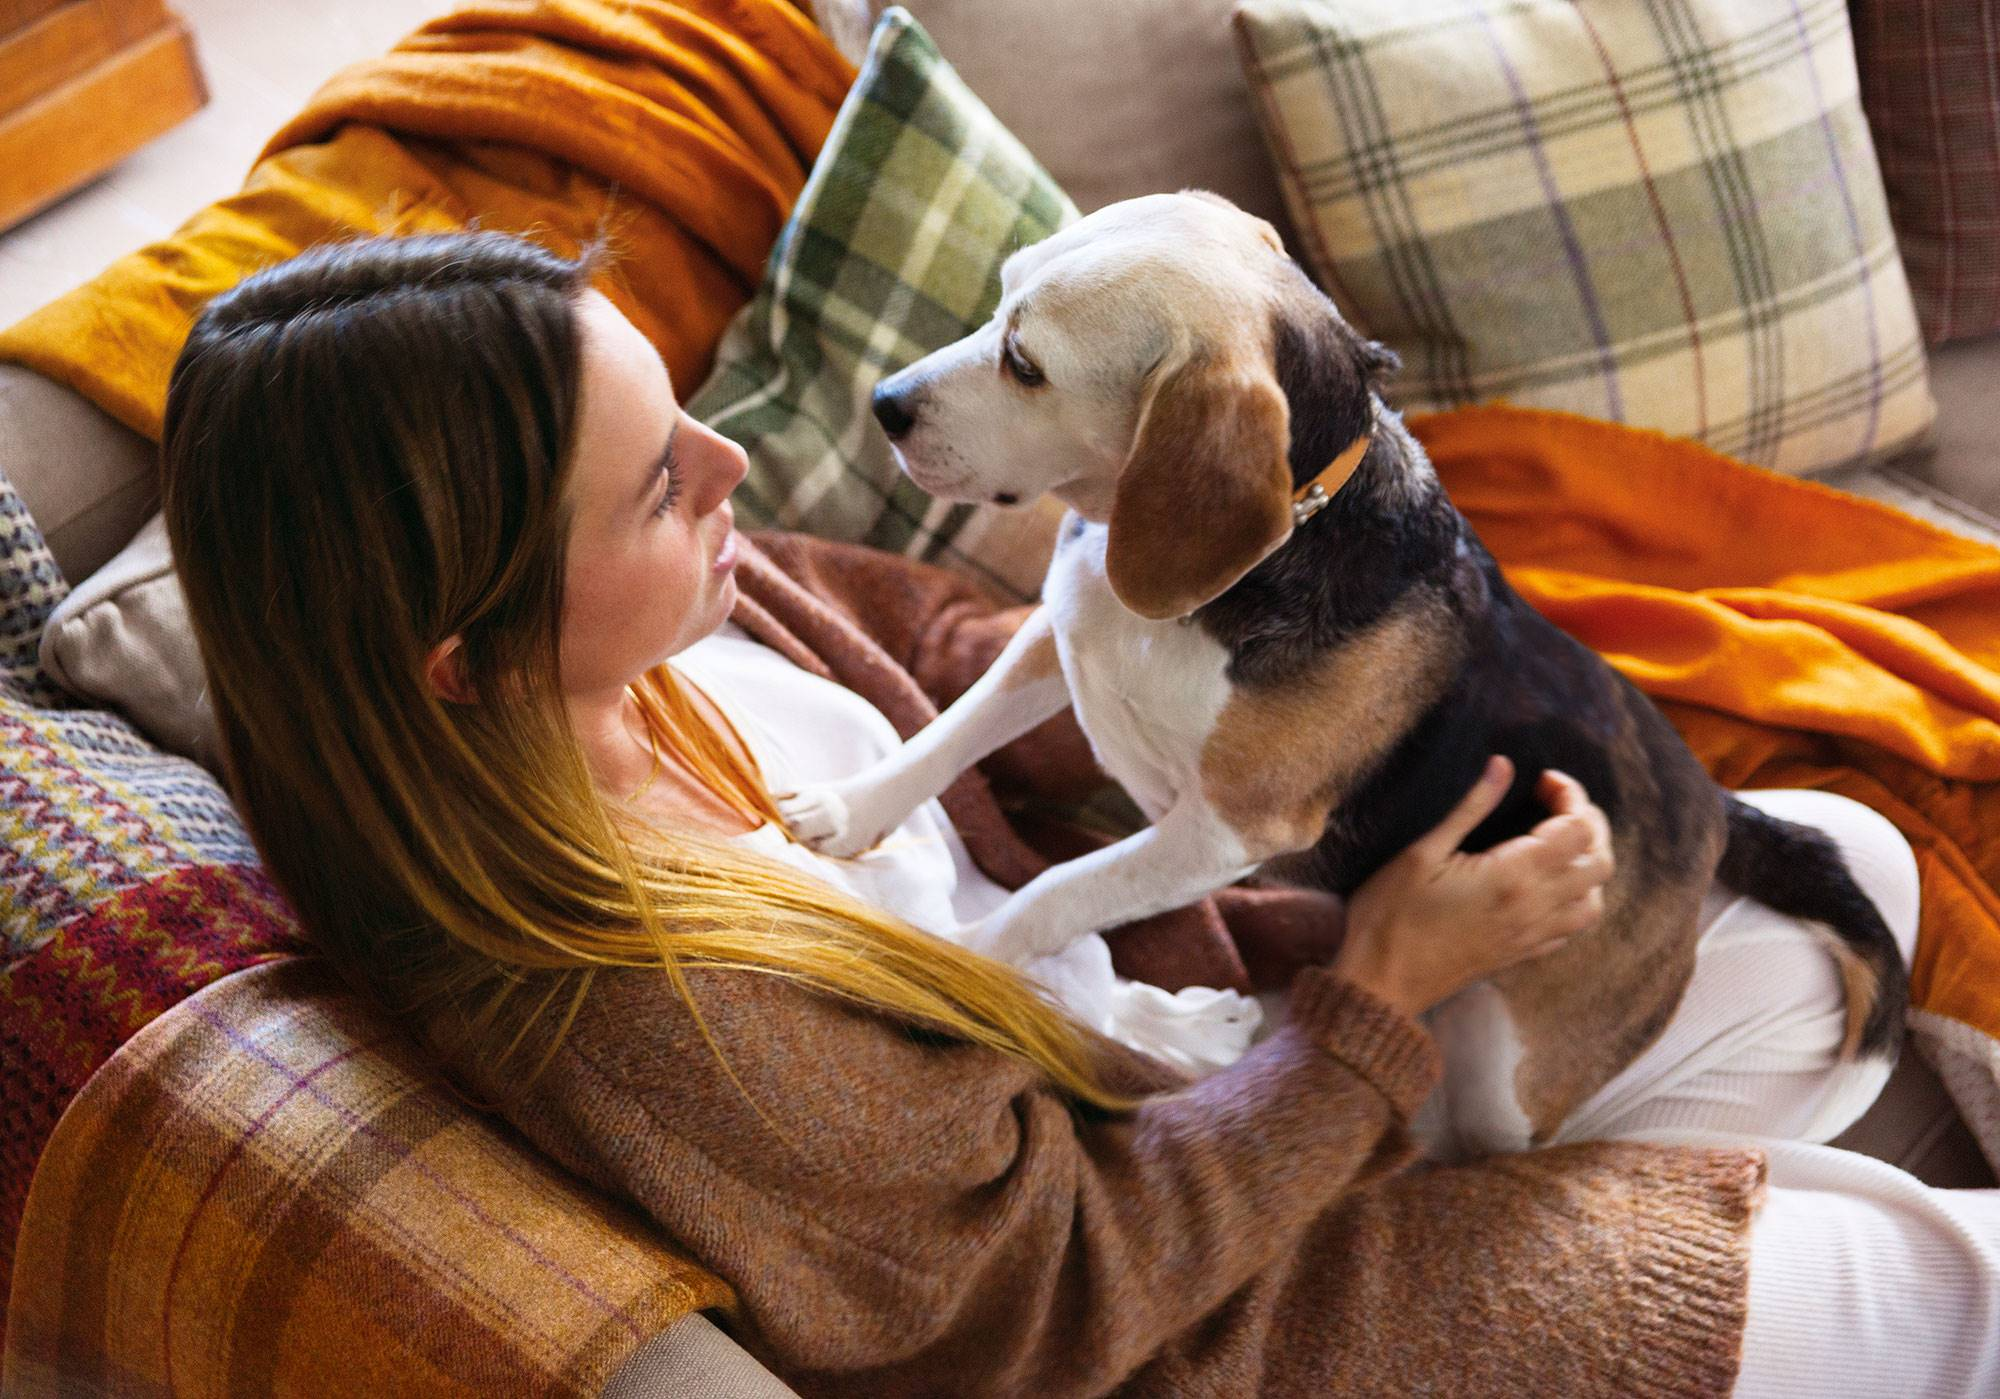 00446882. Beagle: activo y amigable